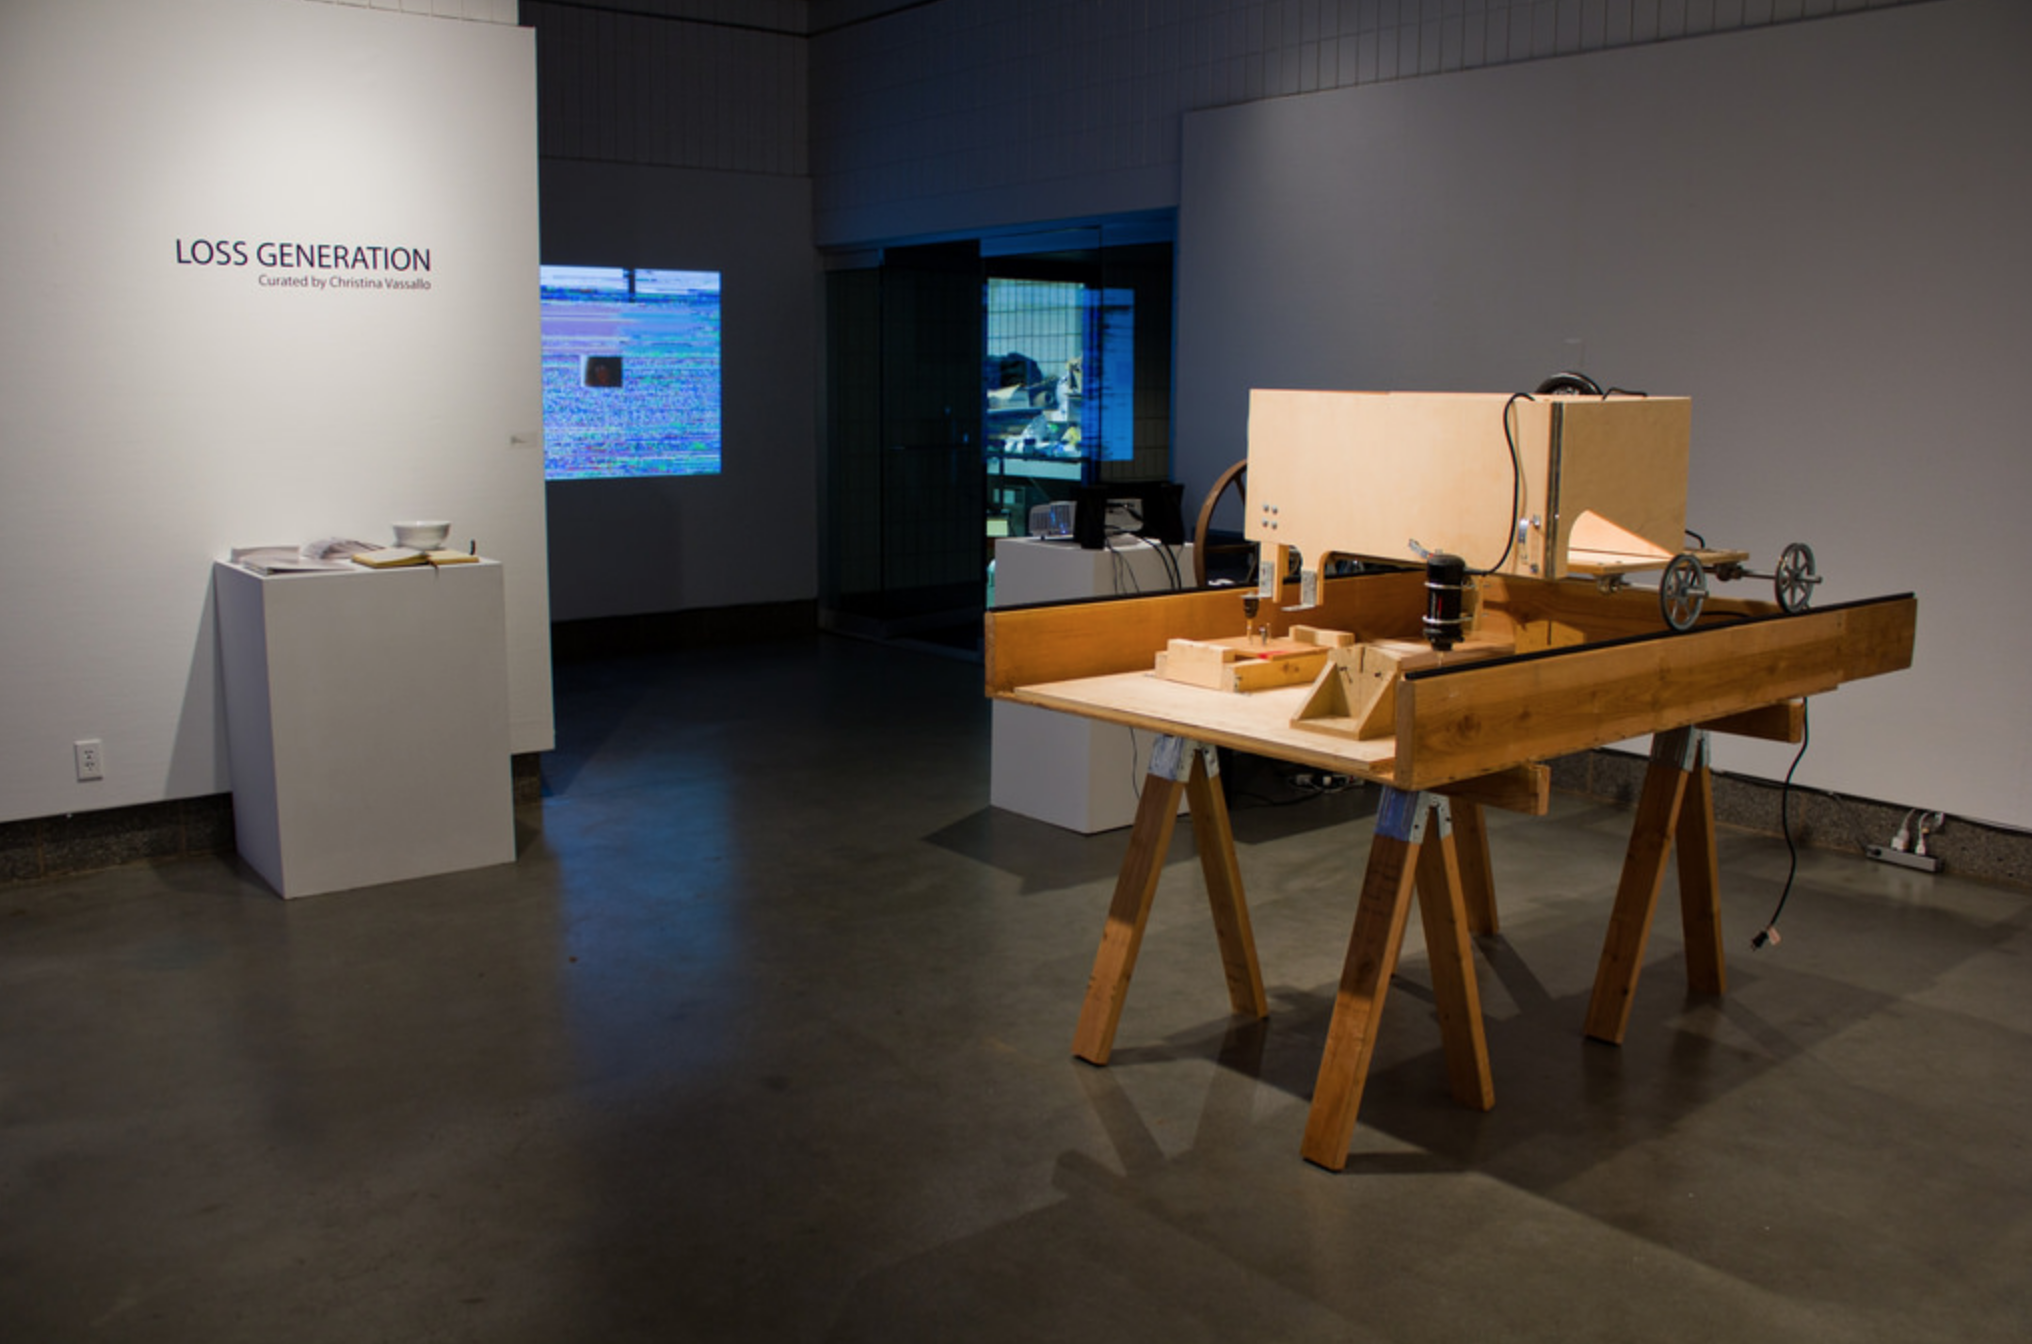 Loss Generation , installation view